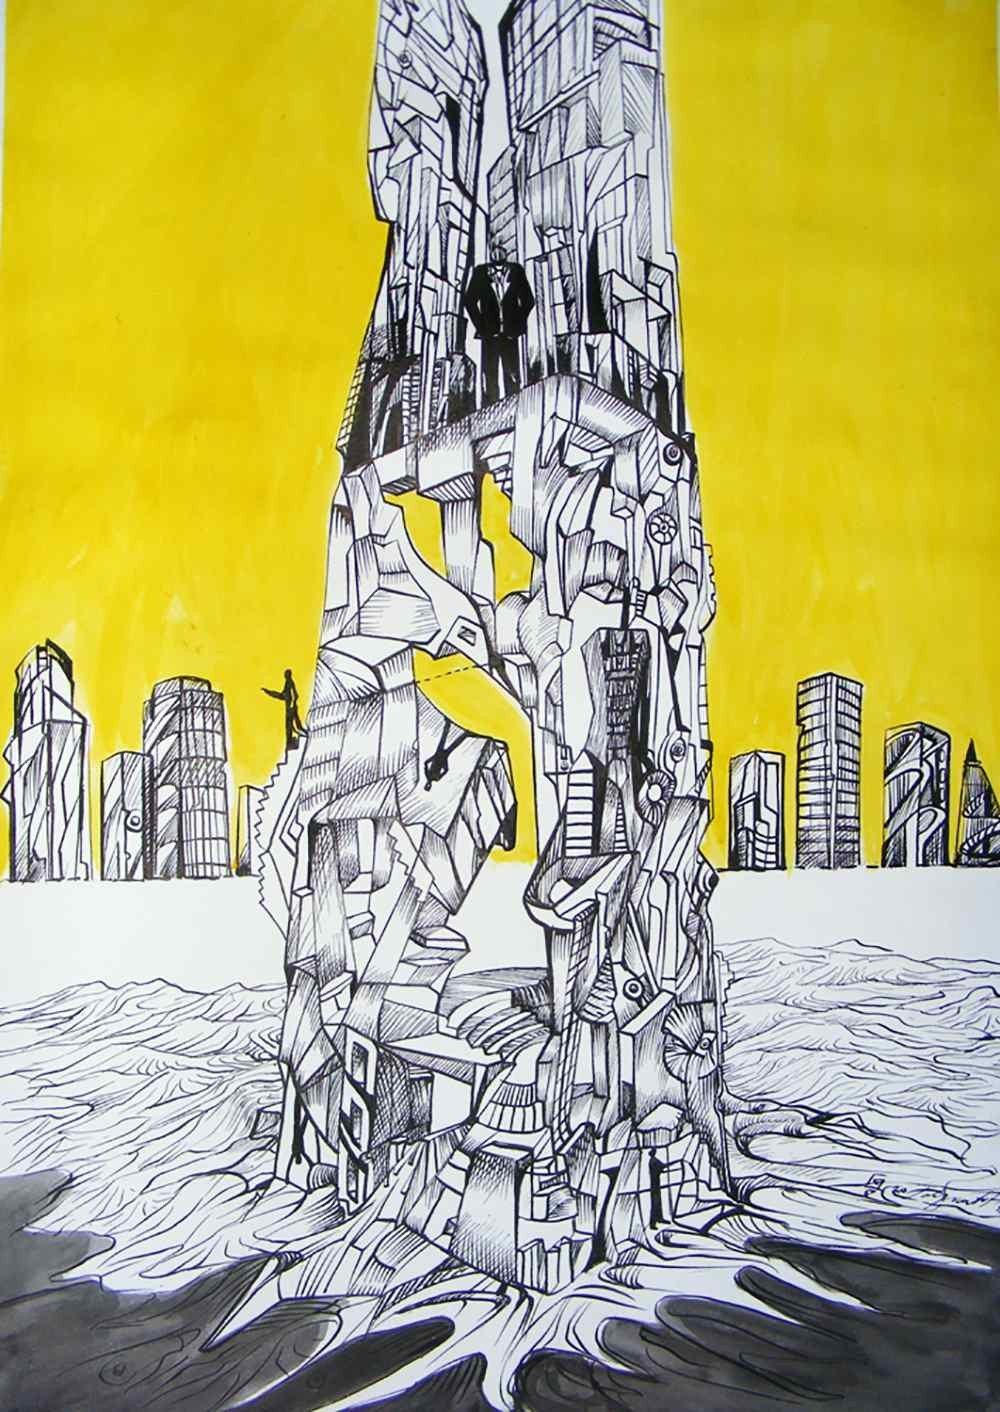 Going to the top, ink drawing by Marko Gavrilovic